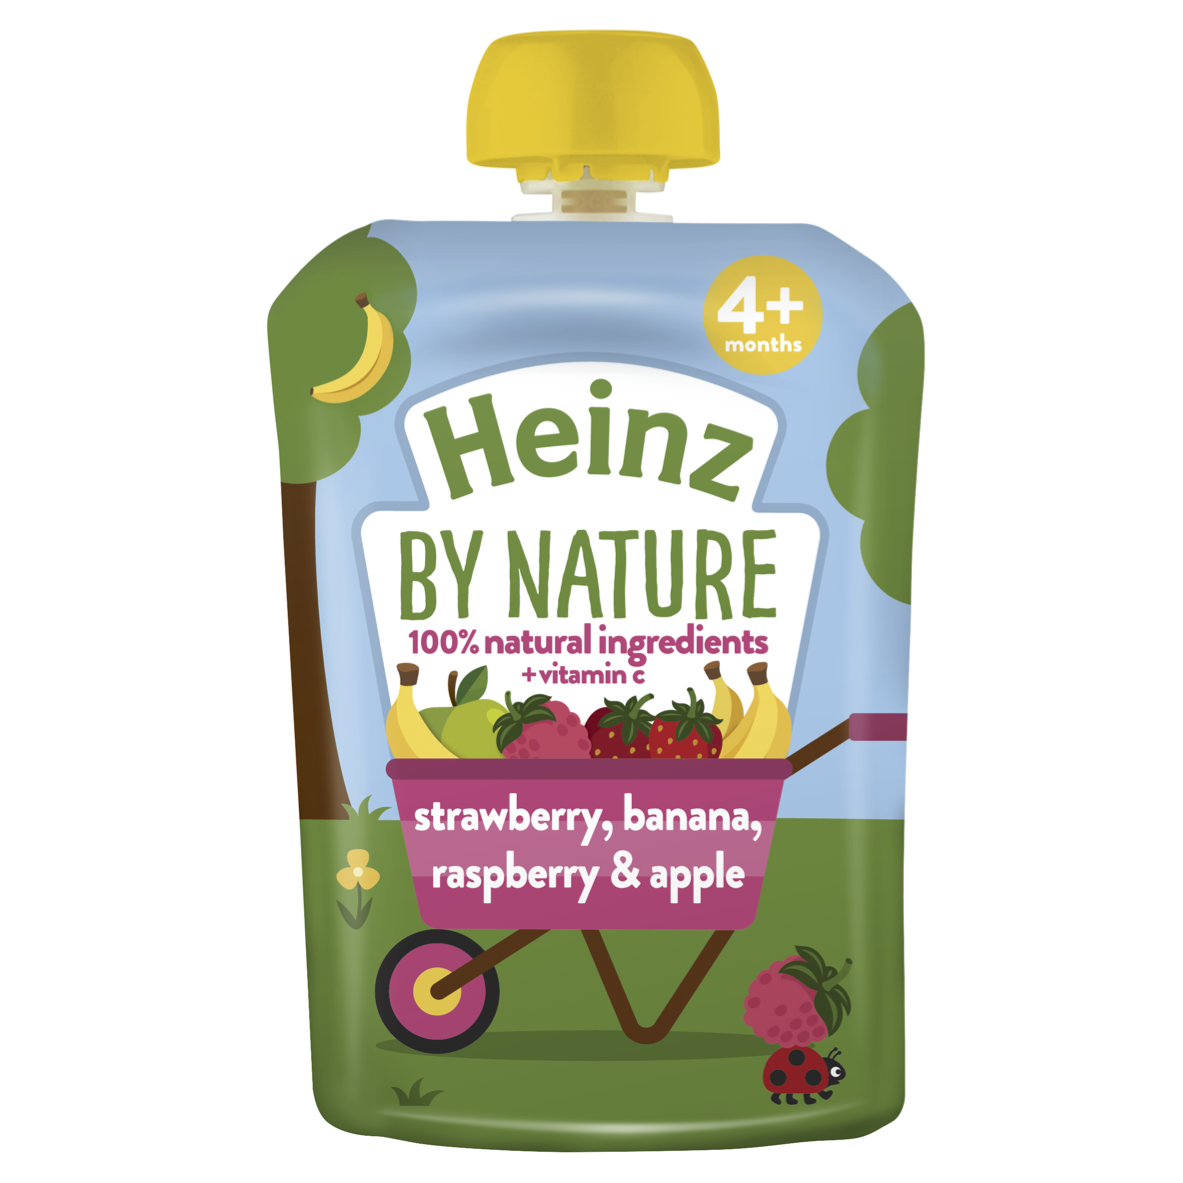 Photograph of 6x Heinz Strawberry Raspberry & Banana Fruit Pouch 100g product